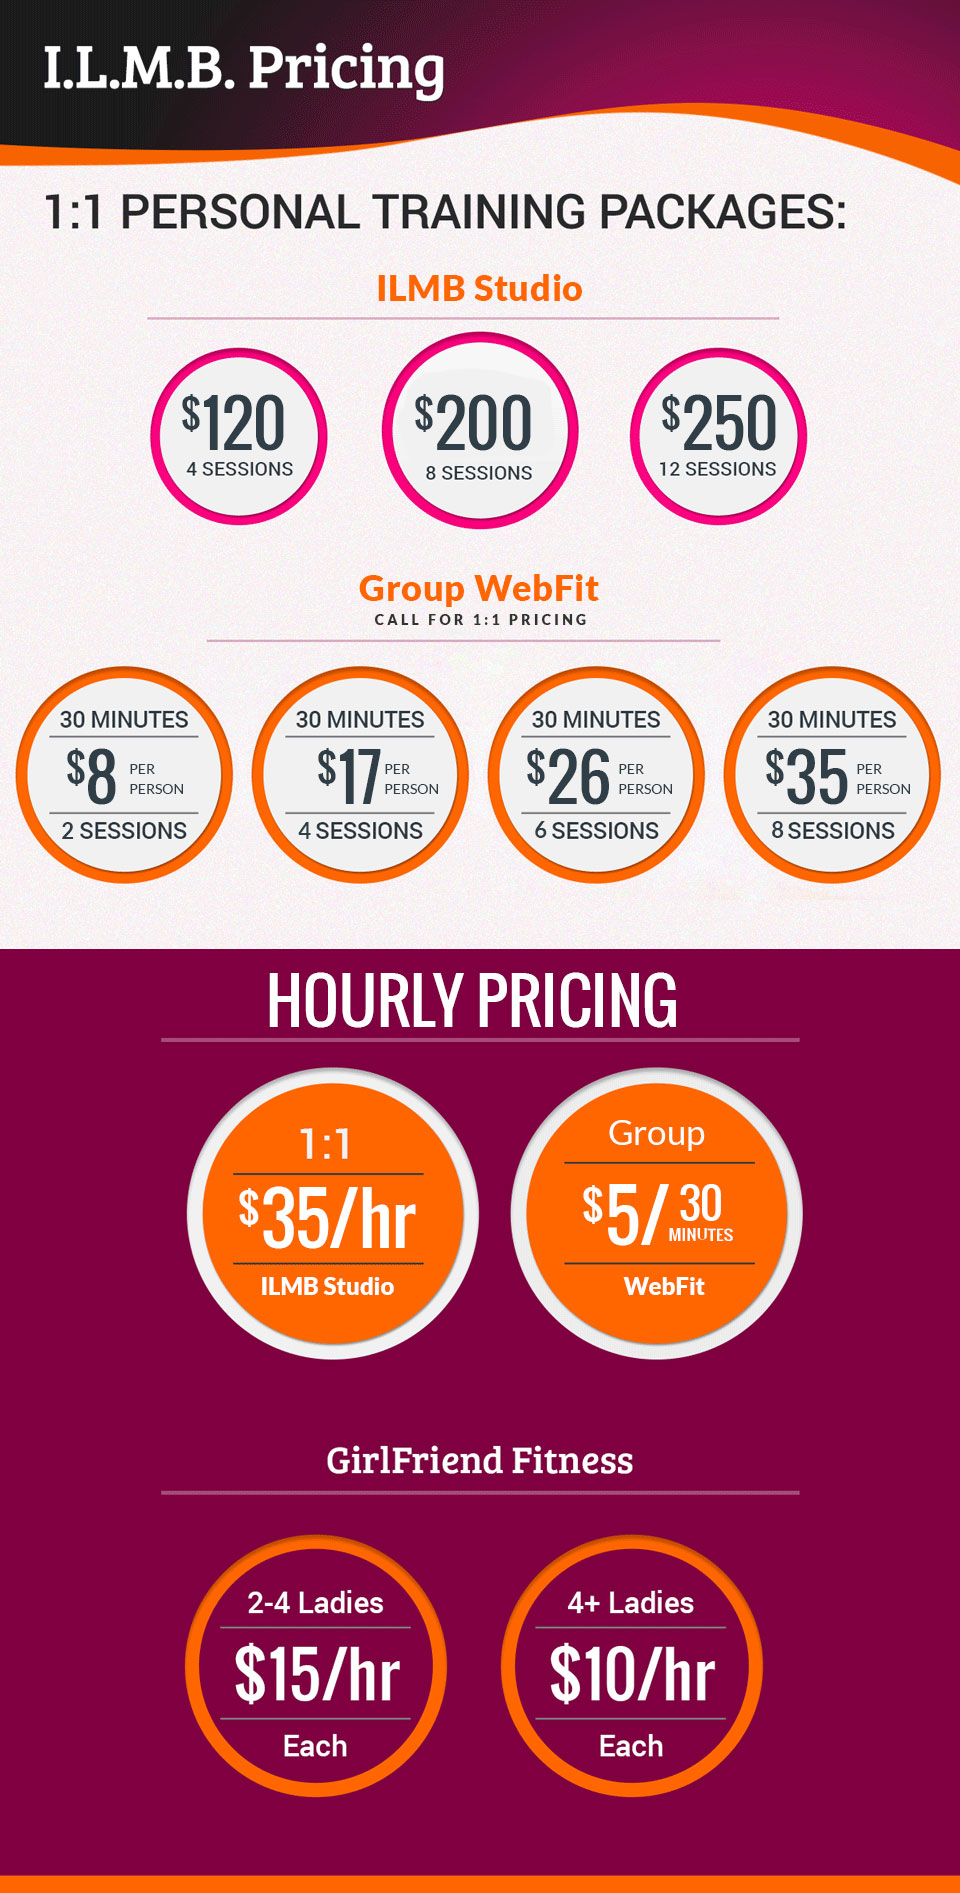 Pricing table for I Love My Body (I.L.M.B.) Services